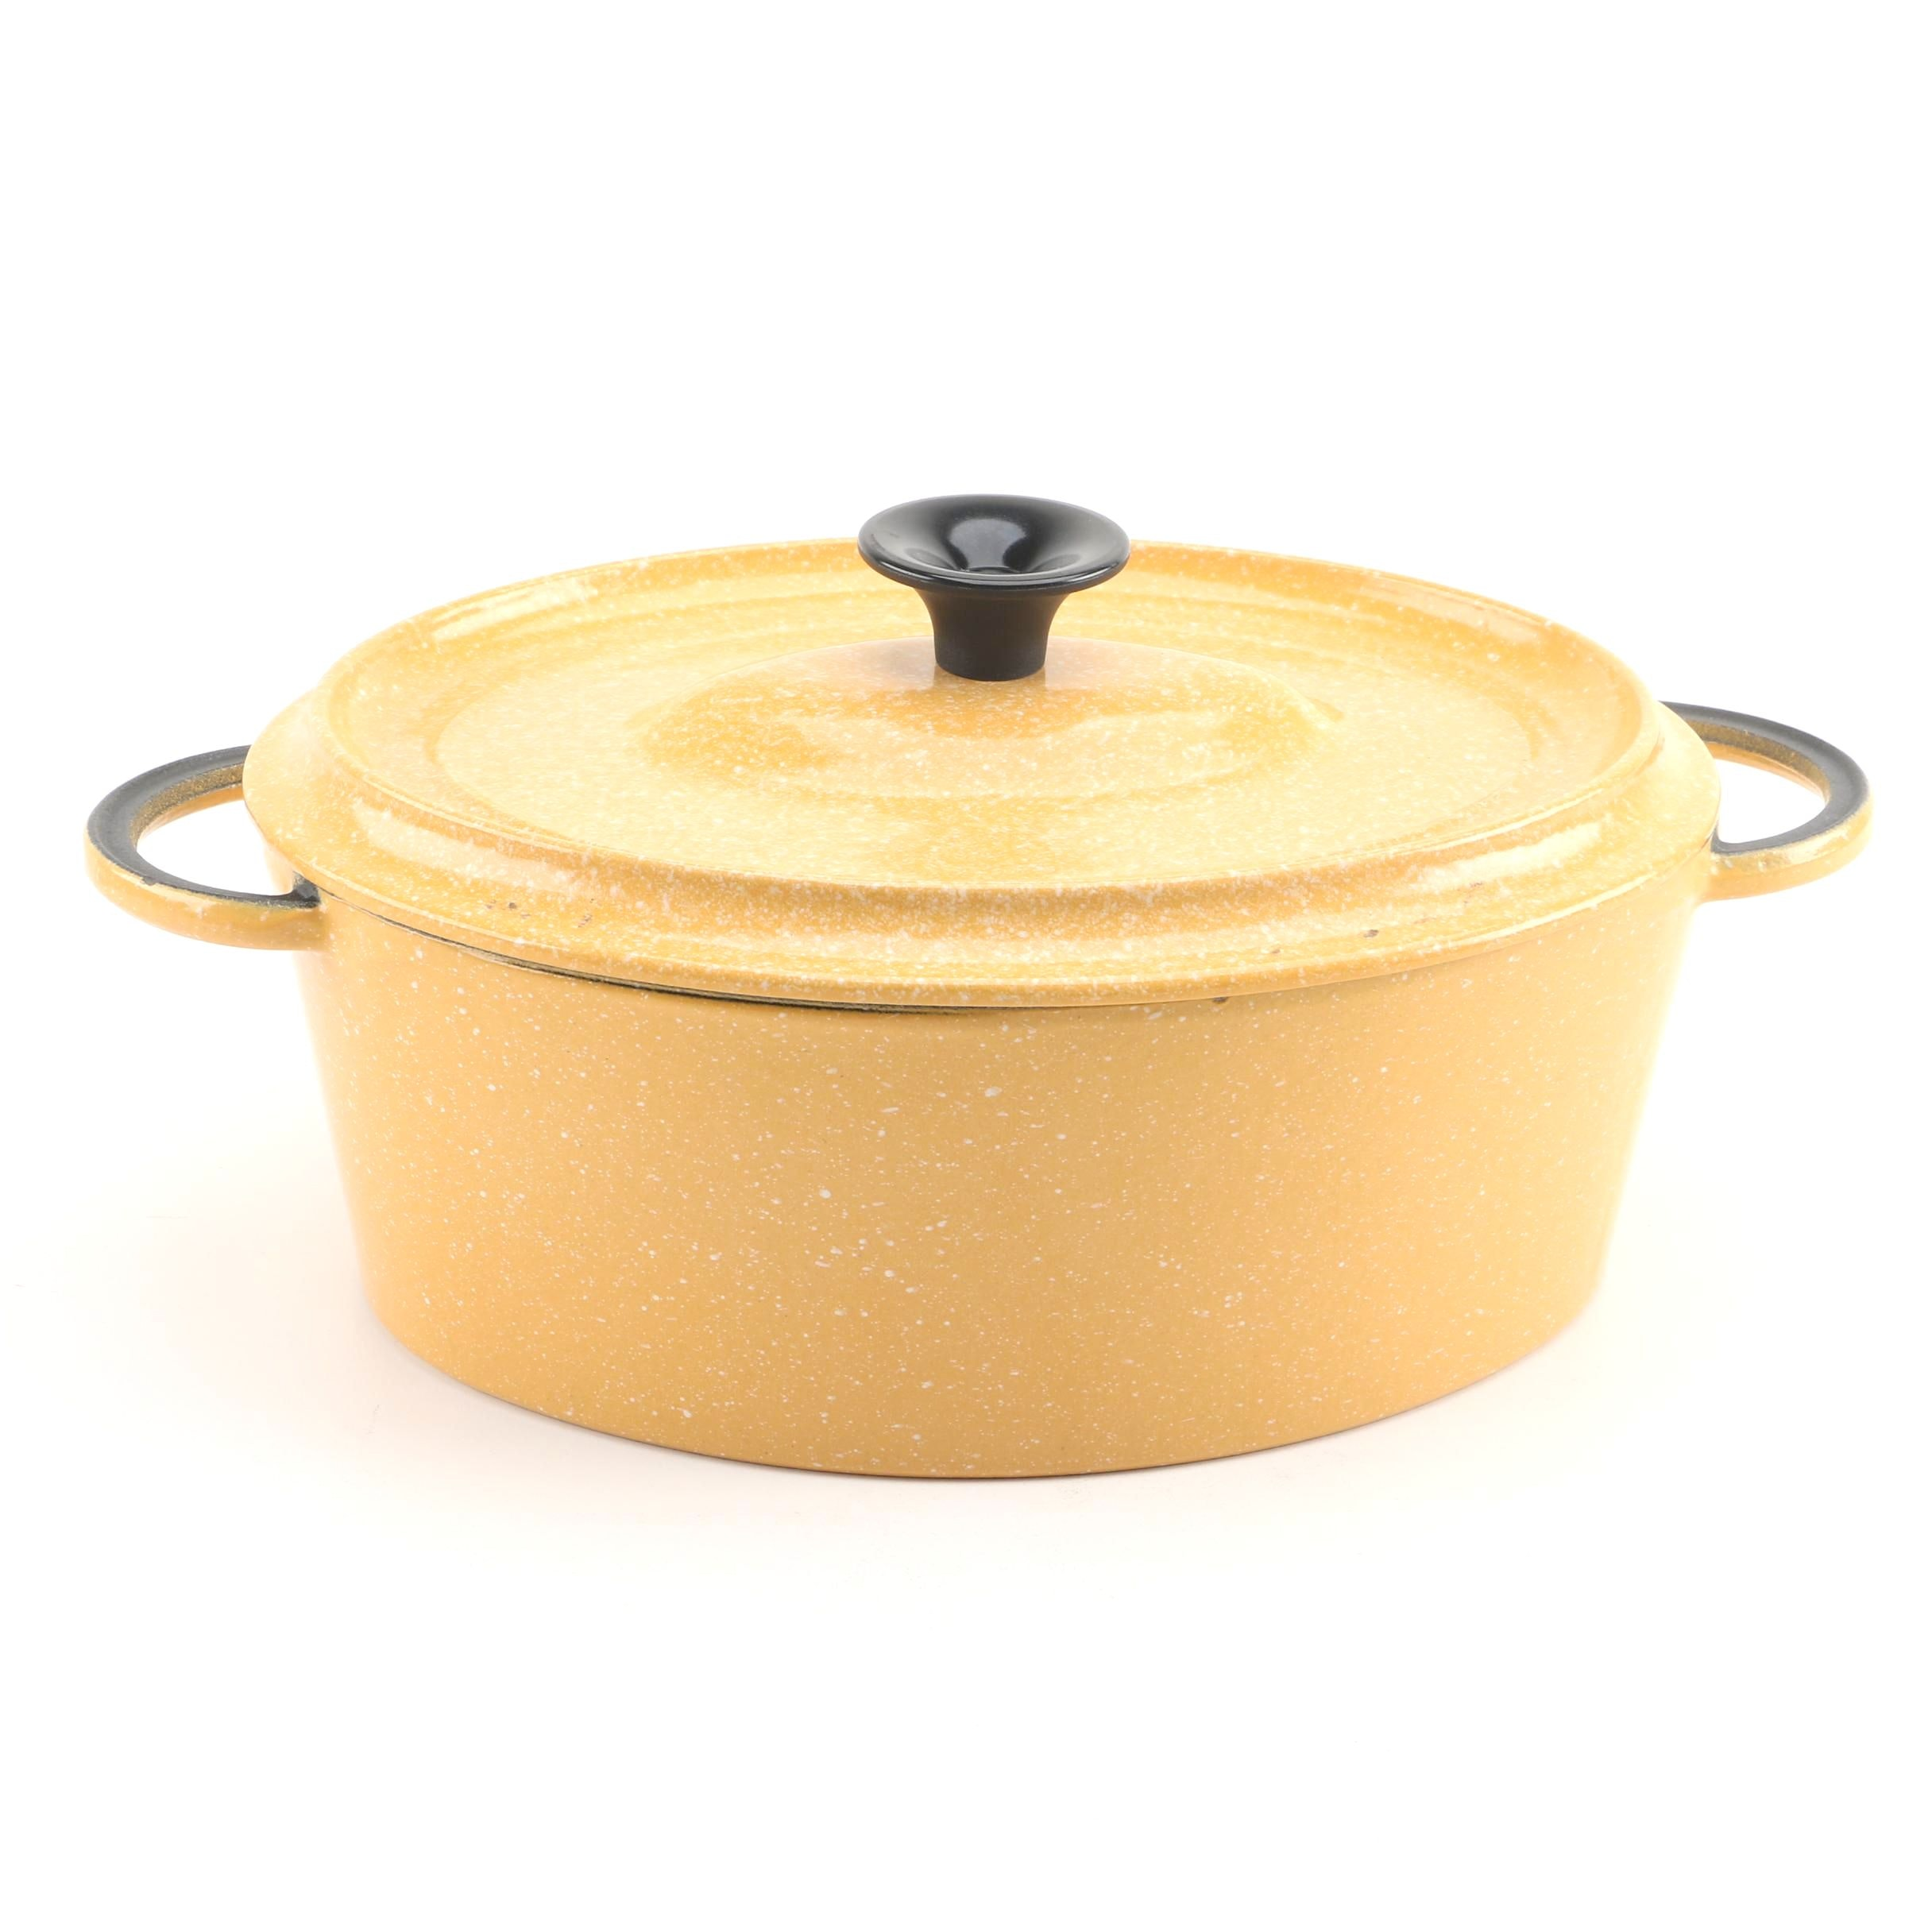 French Enameled Cast Iron Dutch Oven